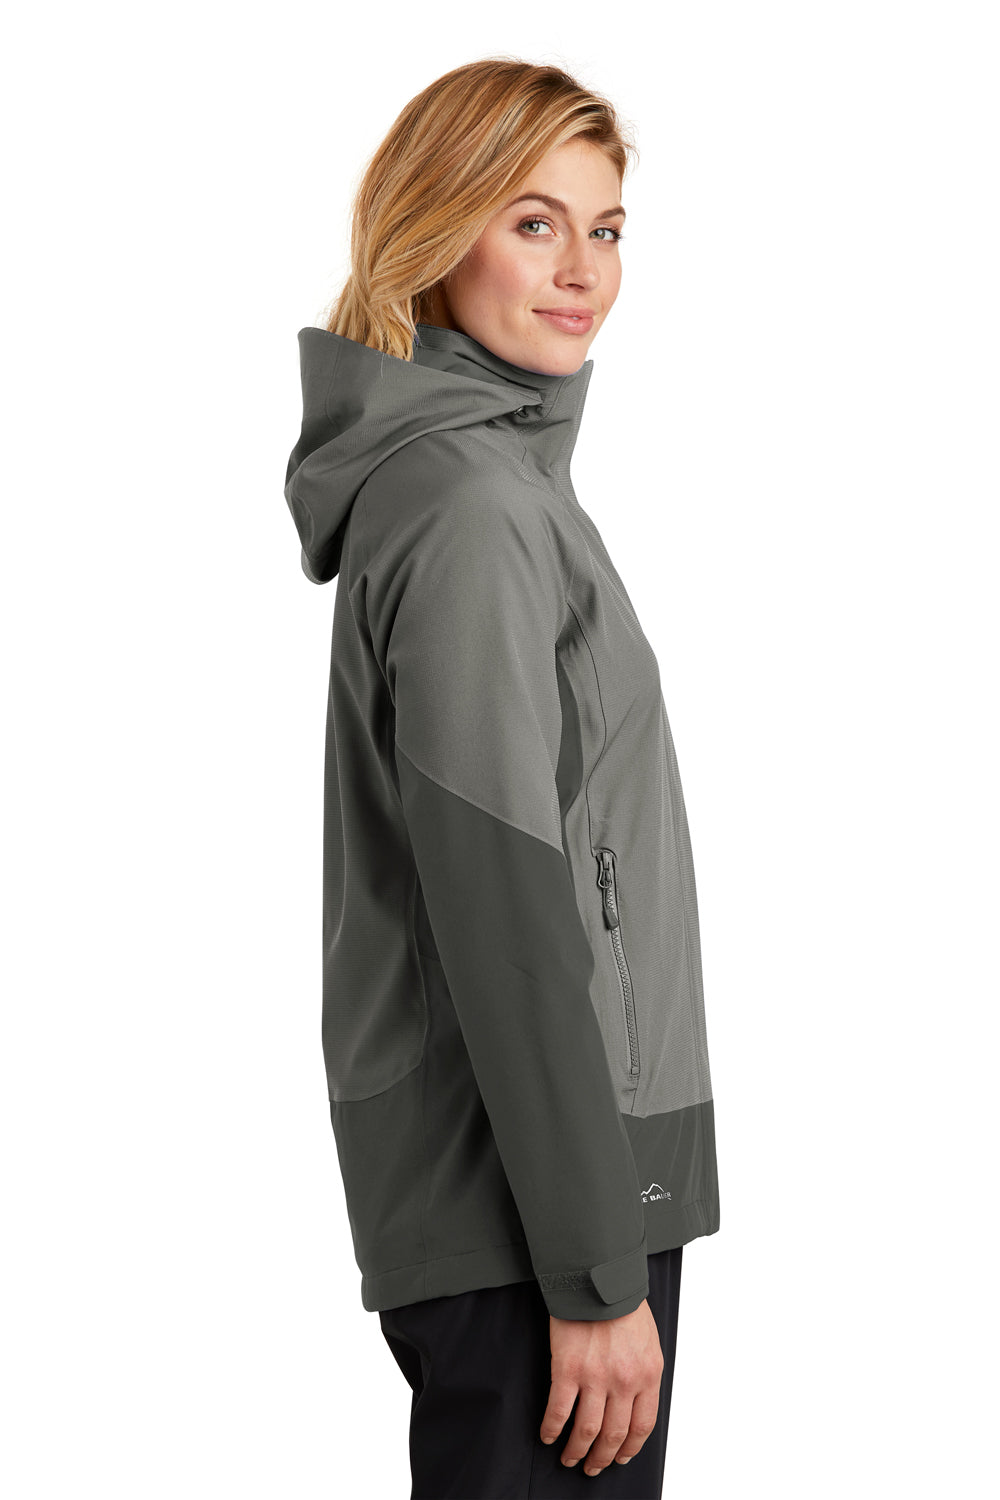 Eddie Bauer EB559 Womens WeatherEdge Waterproof Full Zip Hooded Jacket Metal Grey Side